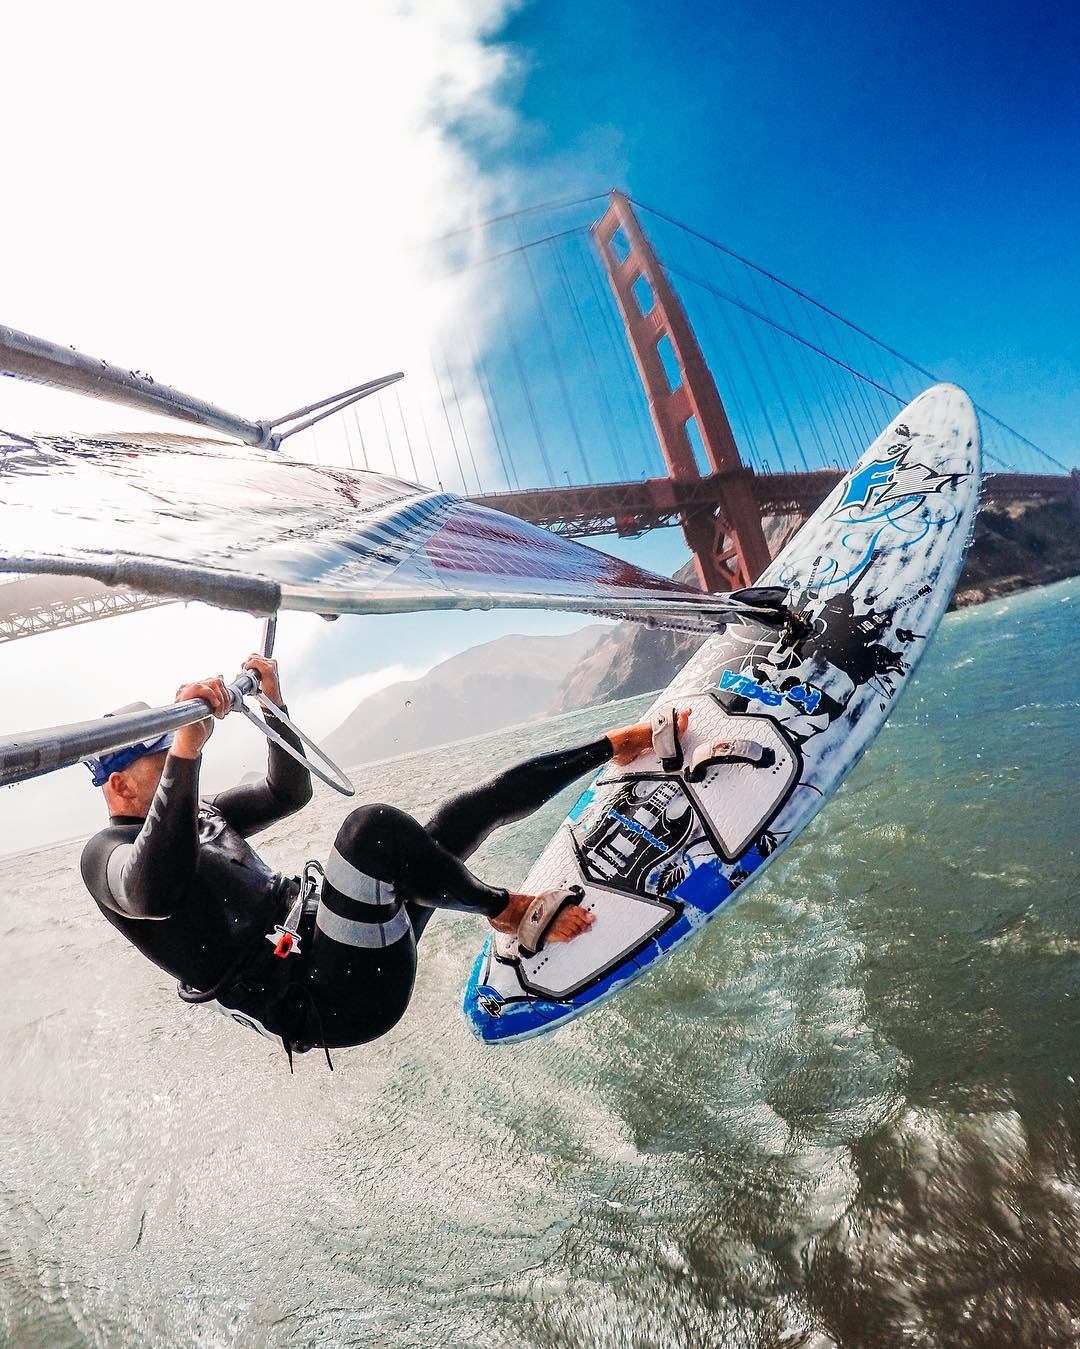 "Photo of the Day! Ian Boyd knows when the fog rolls in on the #GoldenGateBridge, the conditions are ripe for some #windsurfing! As he says, ""it's the best #happyhour in the city."" #GoPro #SanFrancisco #GoldenGate #KarltheFog #SurfSF #SF #"